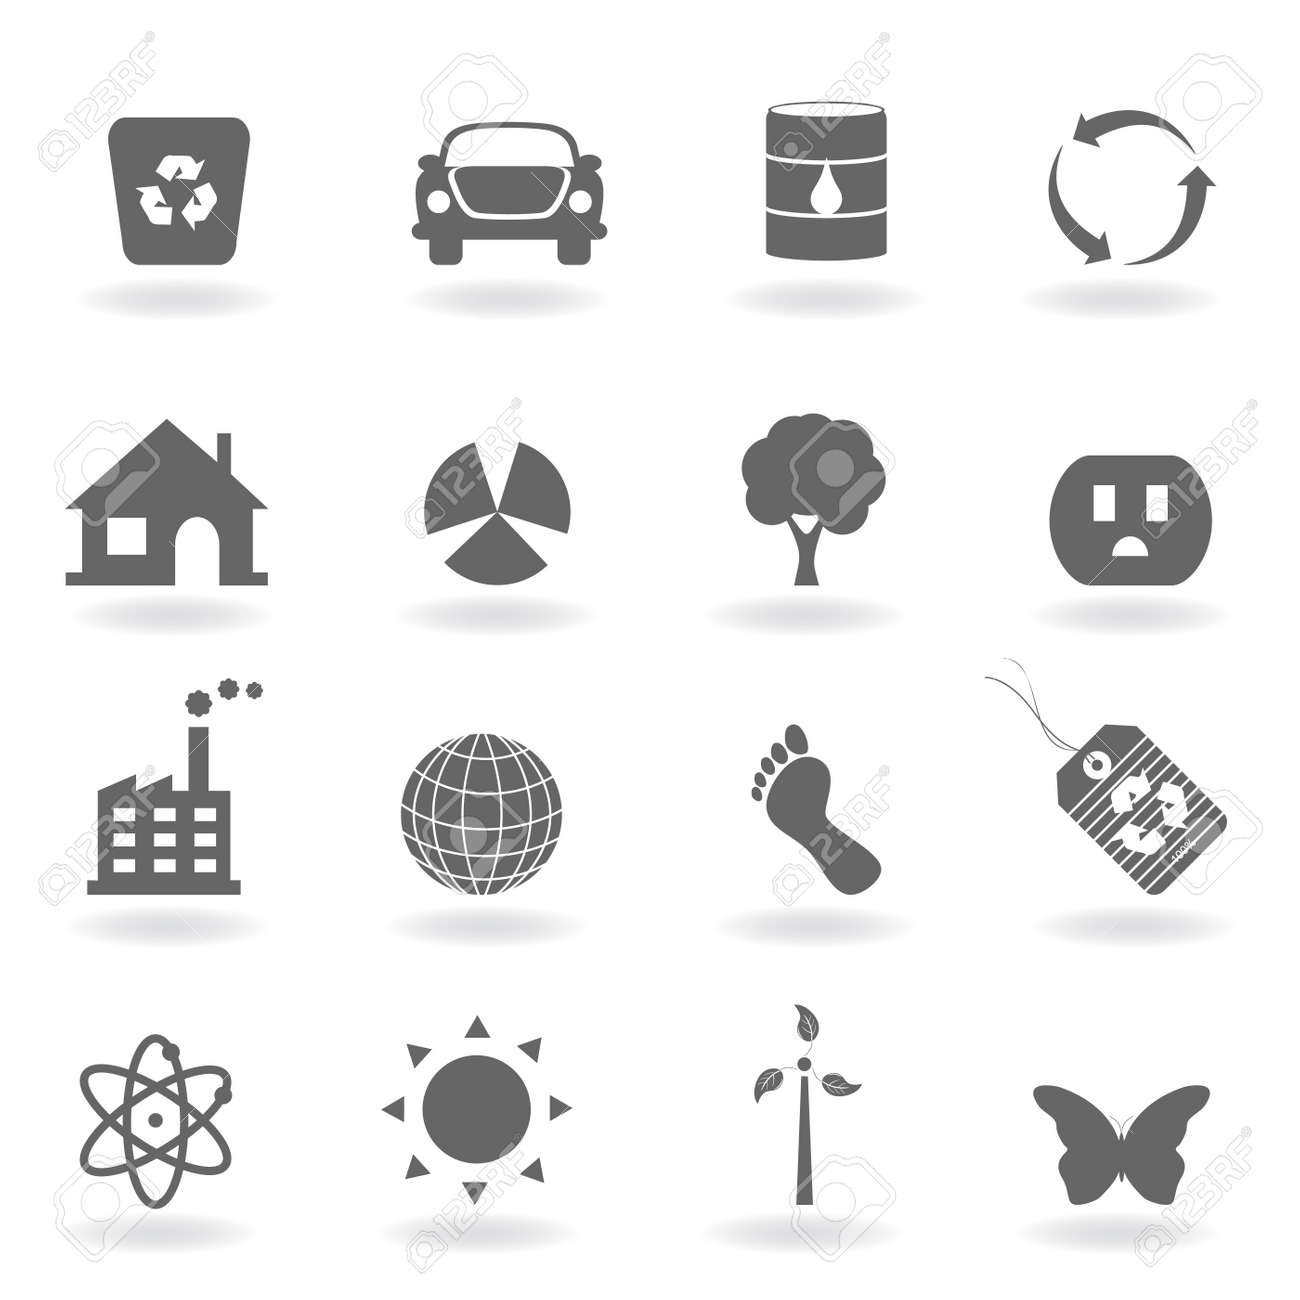 Eco icon set in grayscale Stock Photo - 7880269